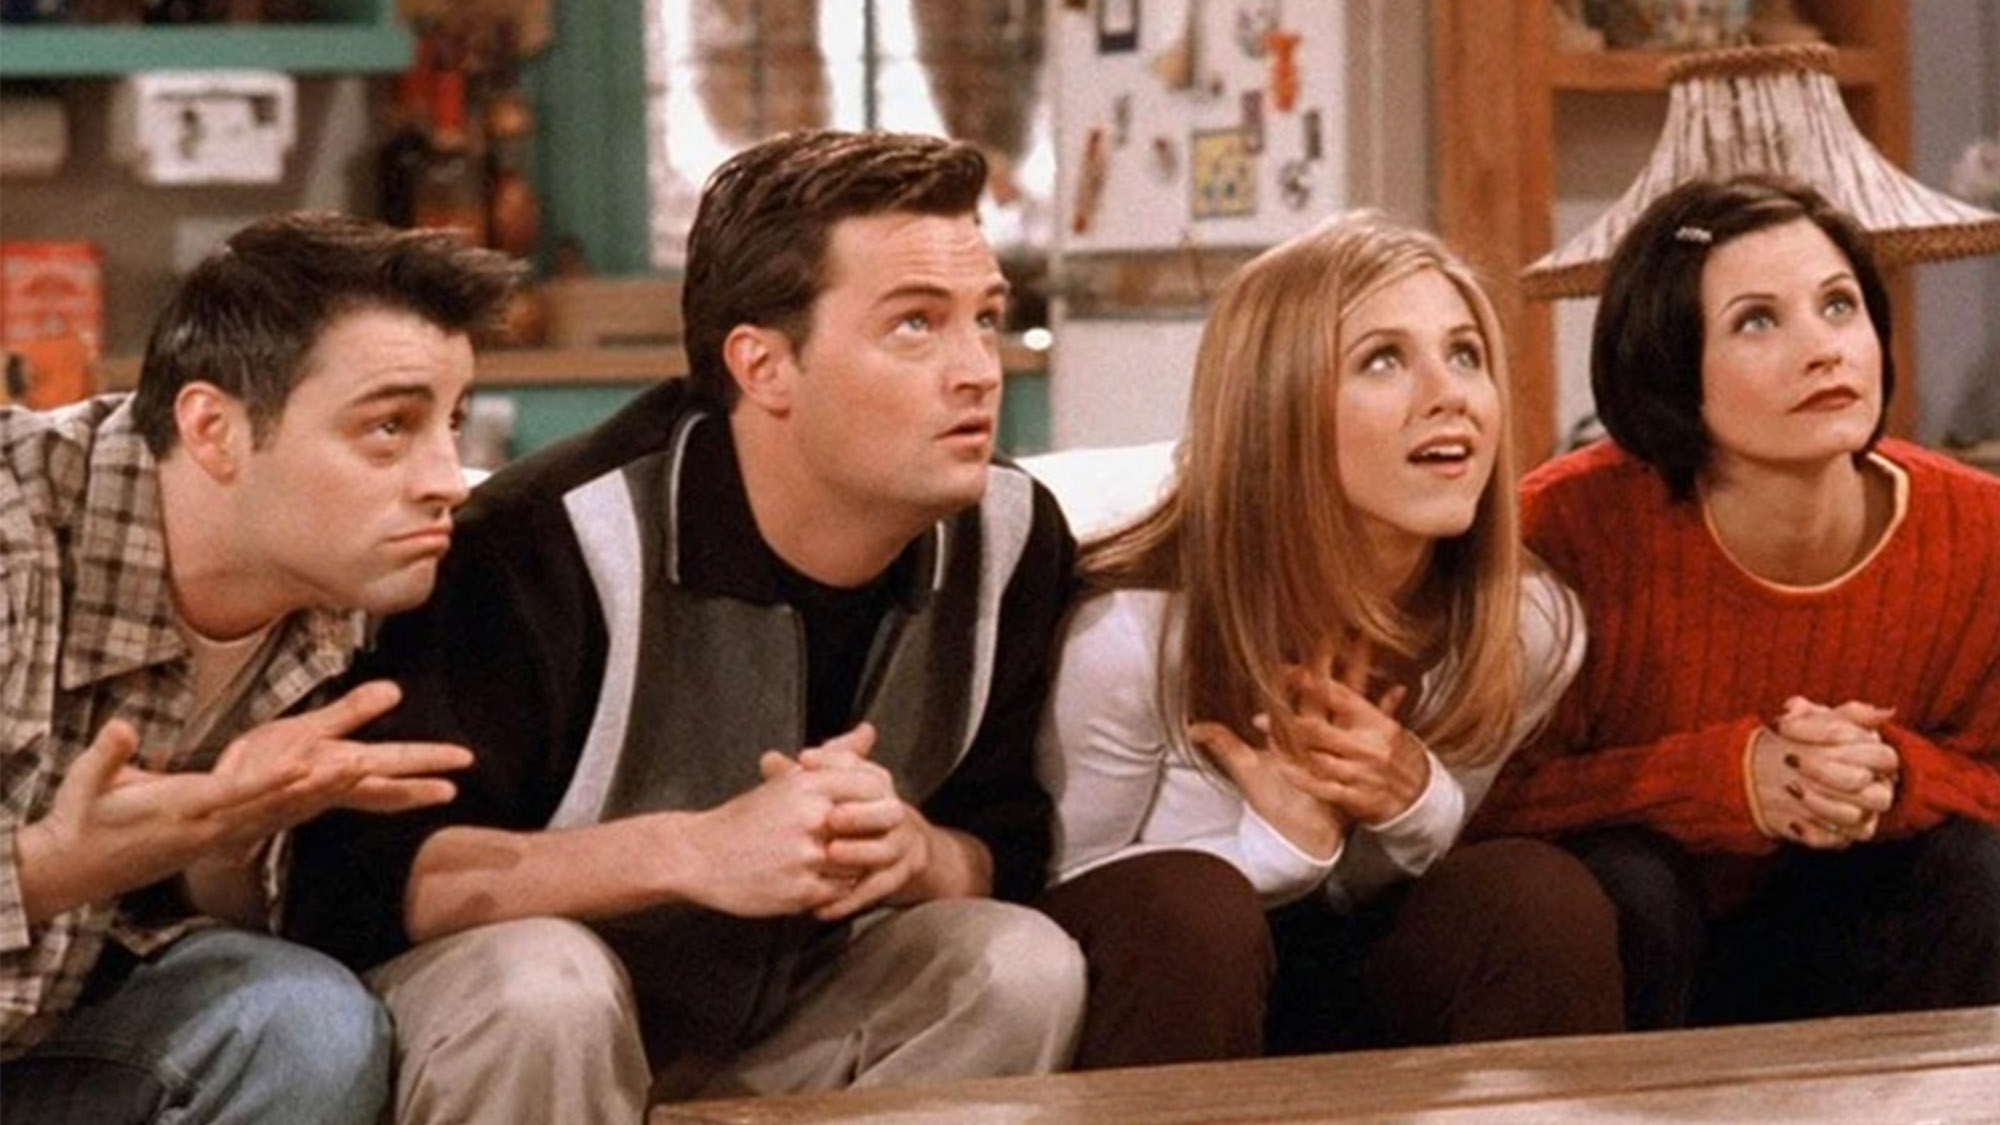 Rachel Greene - the character of the popular American television series Friends